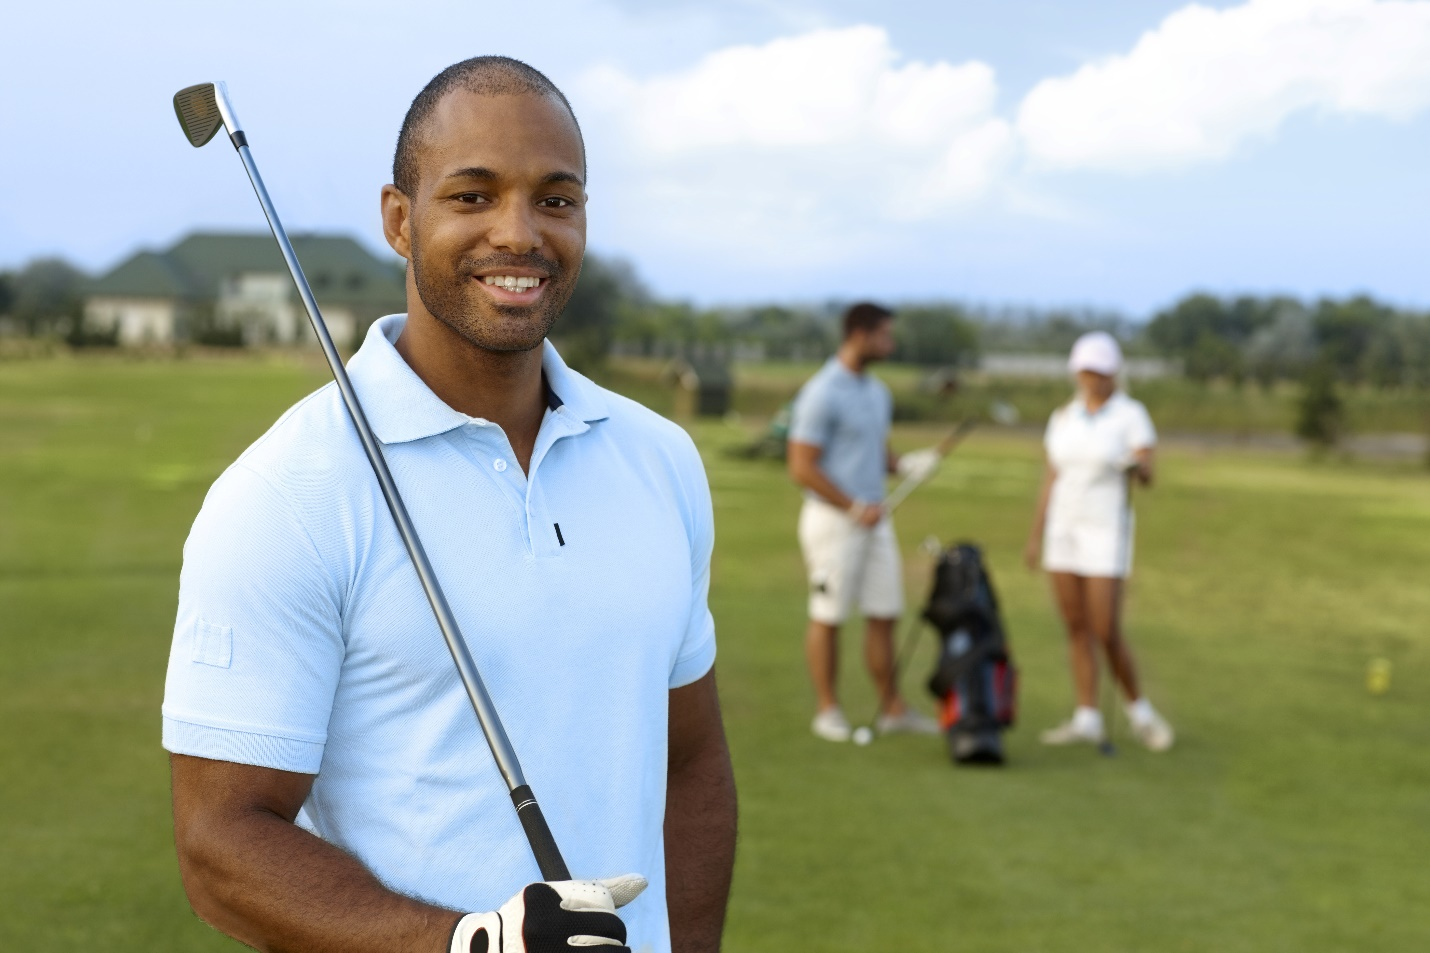 young black golfer with golf club, smiling